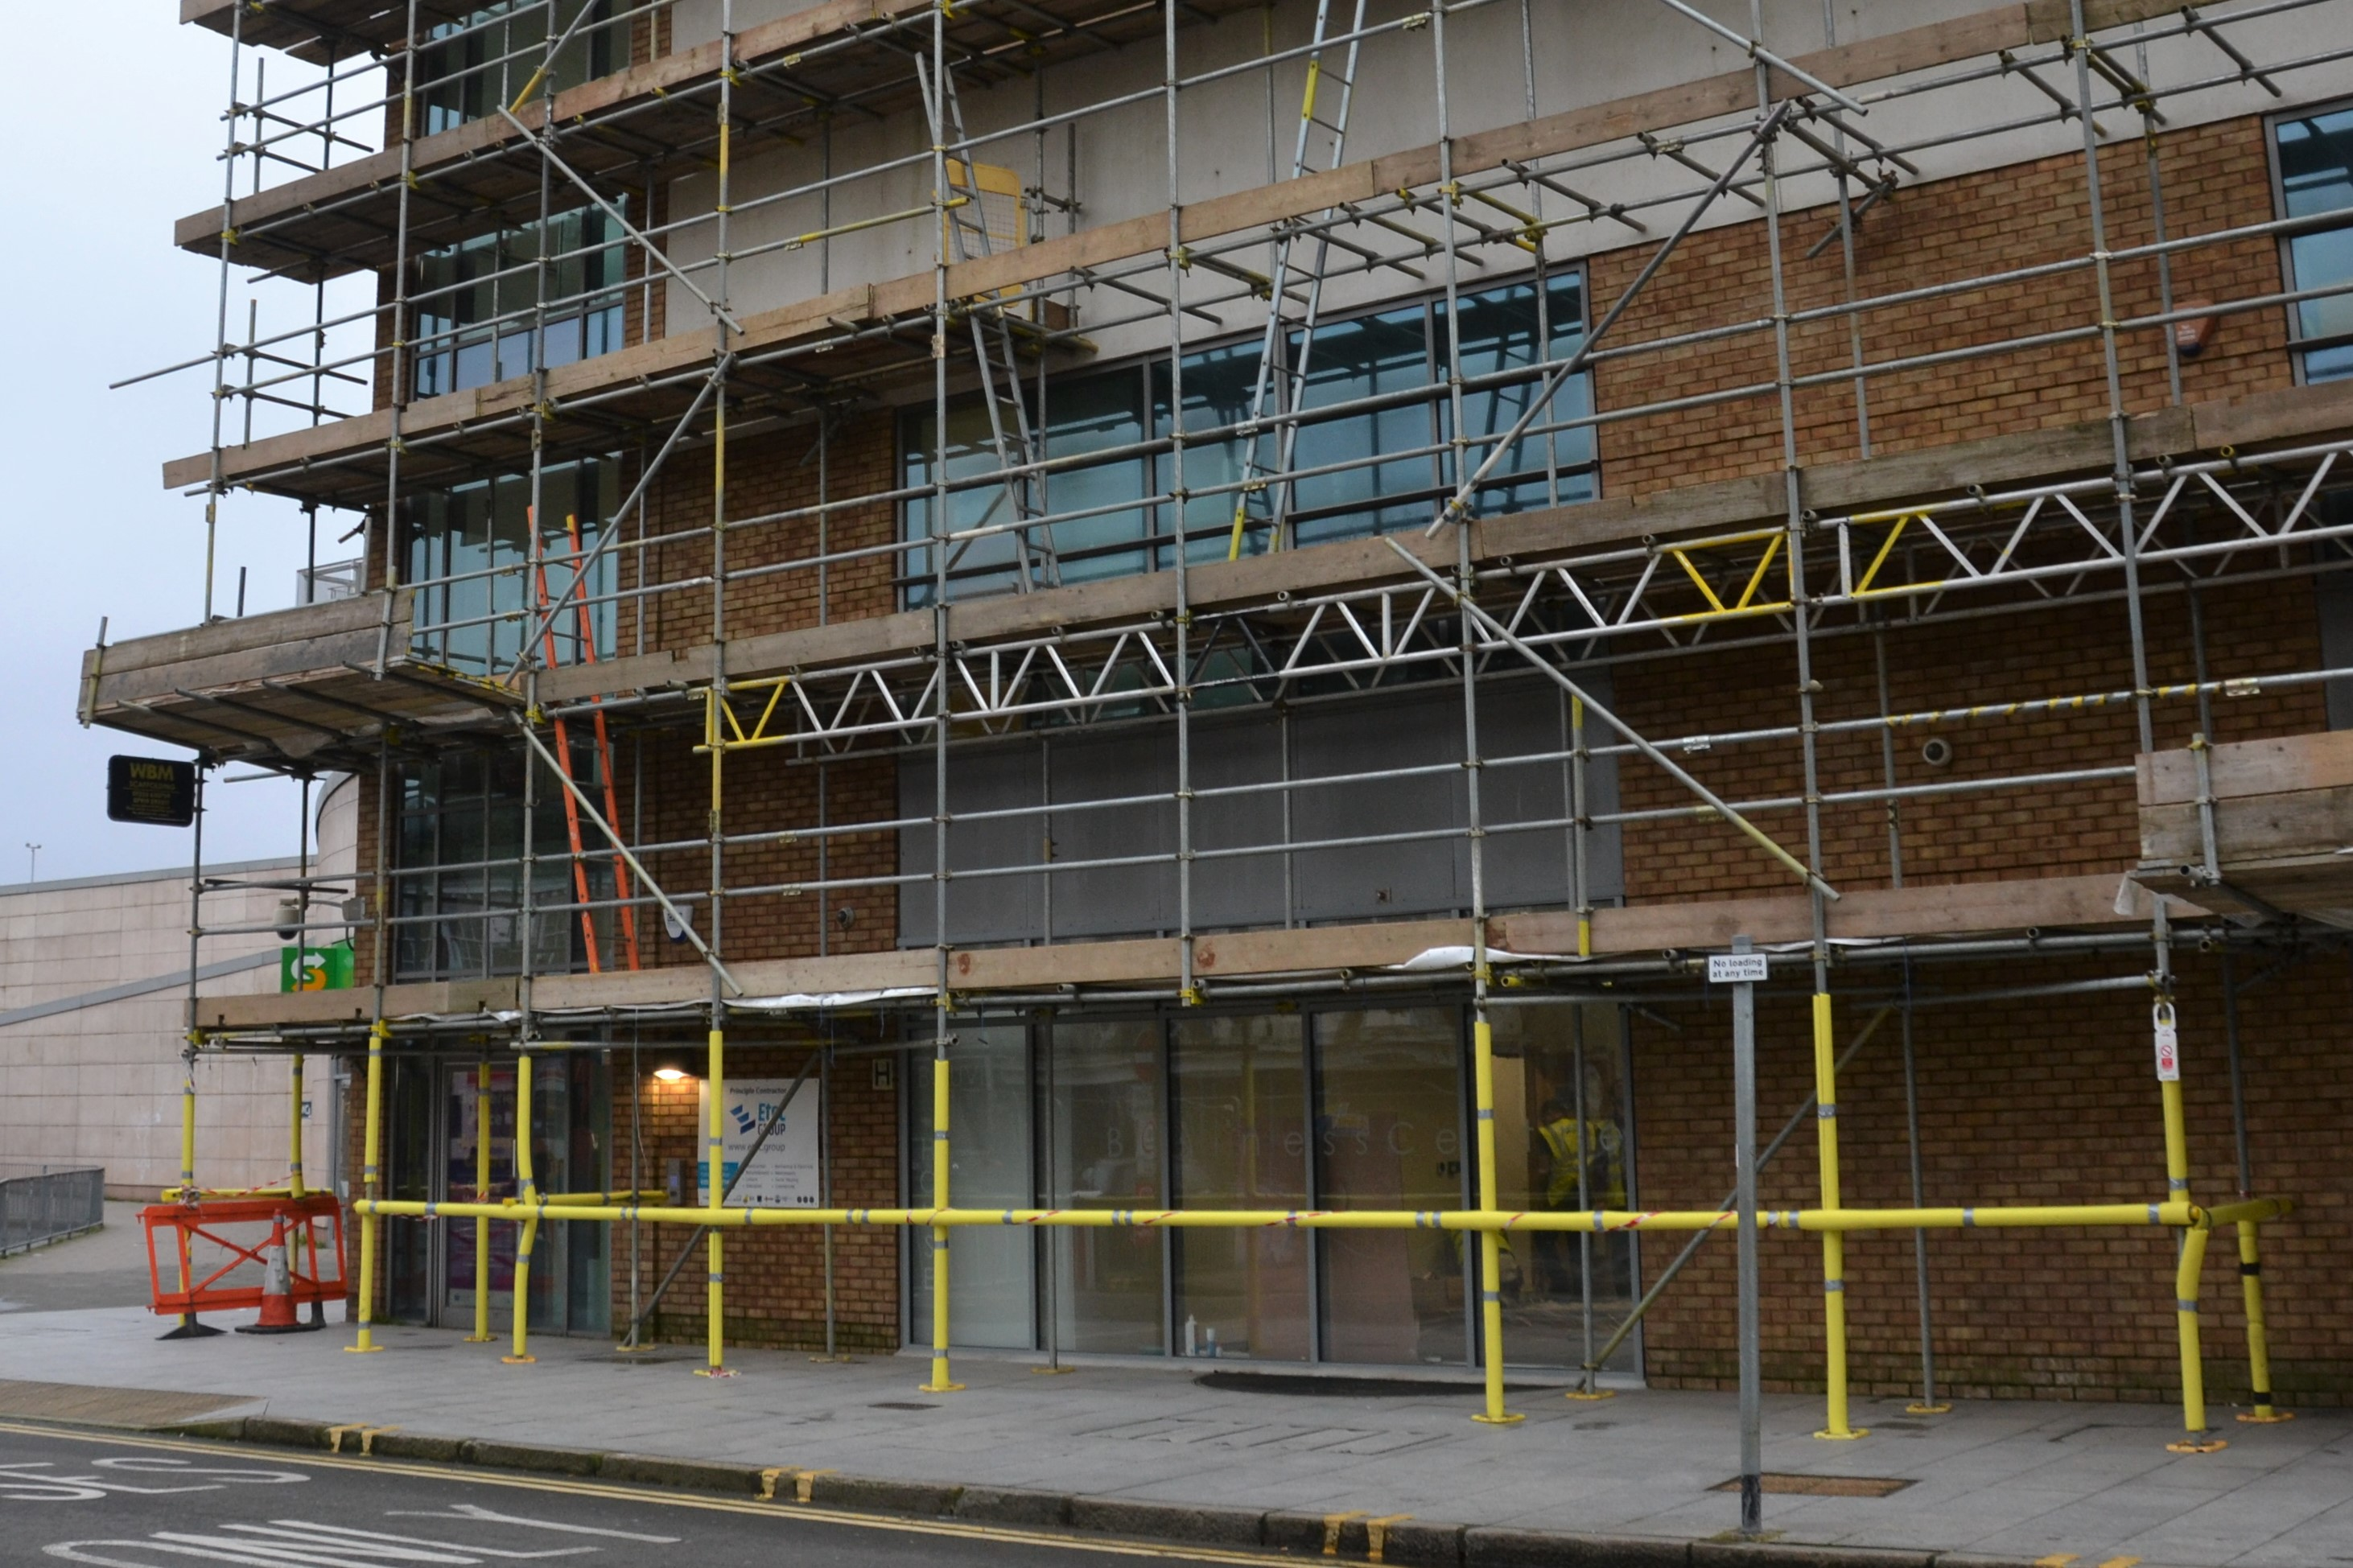 An image relating to New business hub taking shape